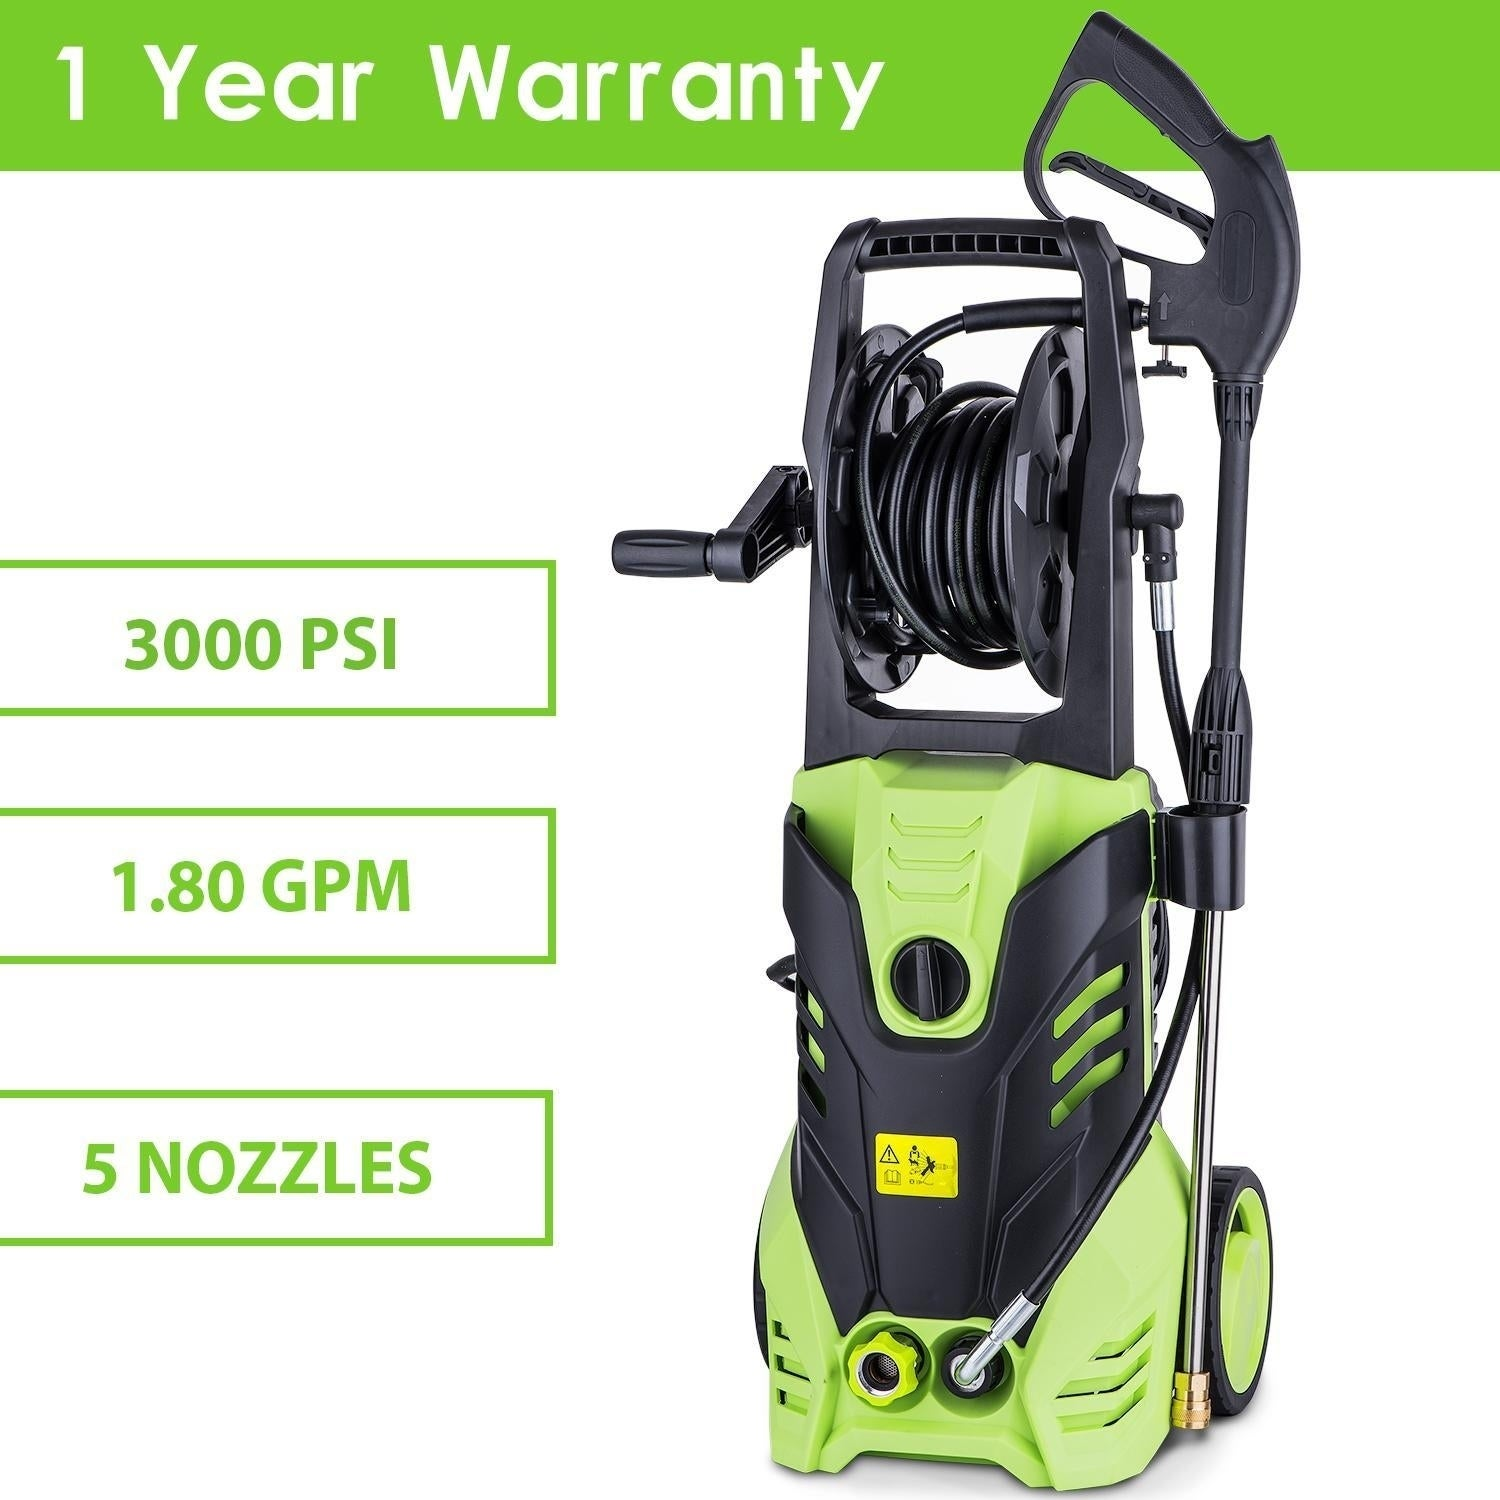 Homdox 3000PSI Electric High Pressure Cleaner Reel Style Cleaning Machine (Green)